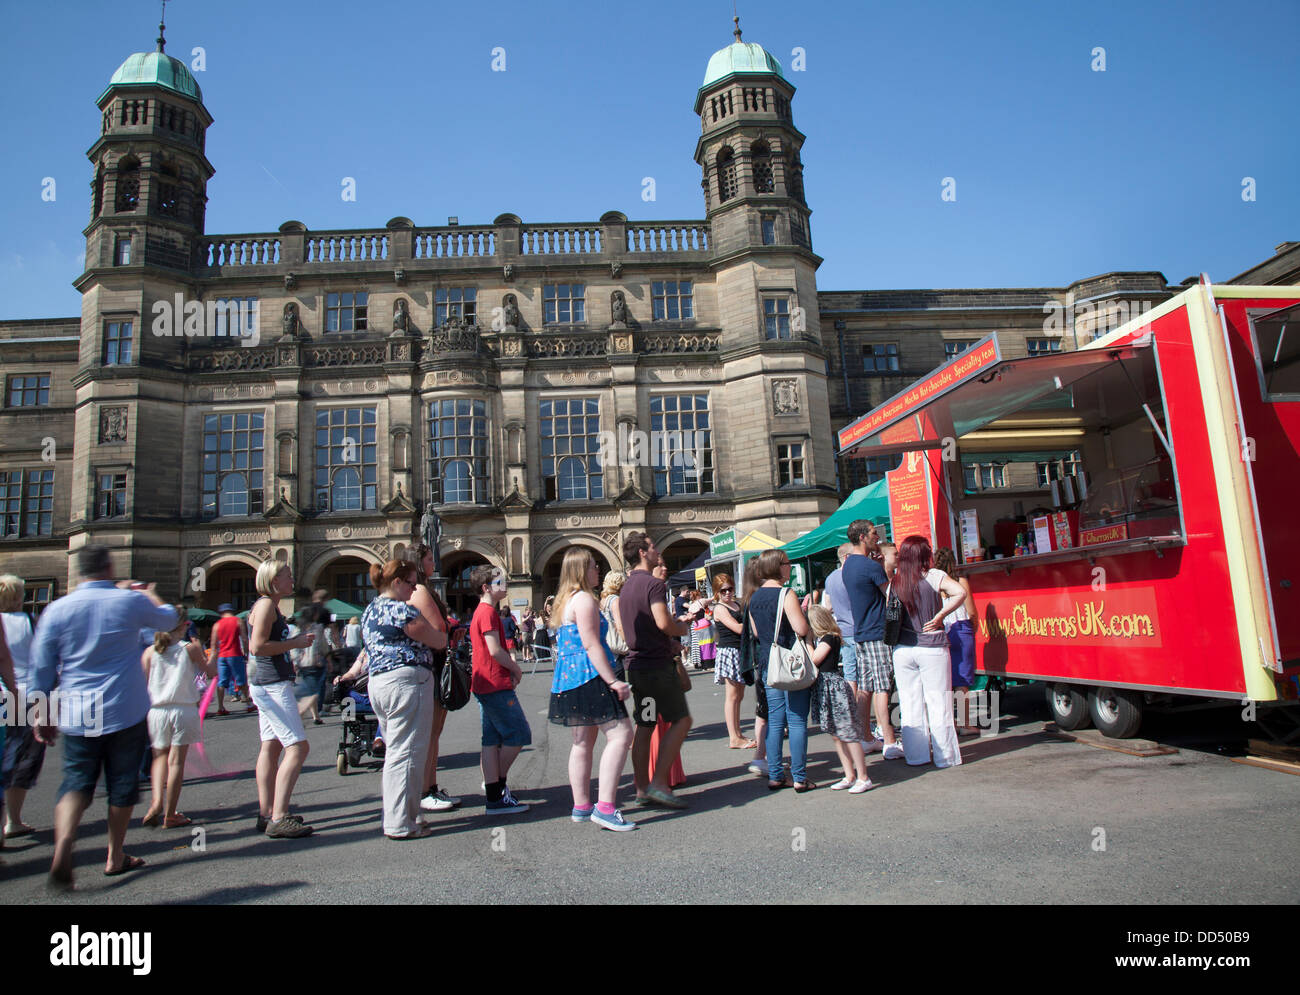 Queue outside Stonyhurst College, for churros at Clitheroe, UK. 26th August, 2013. Food queues at the Great British - Stock Image